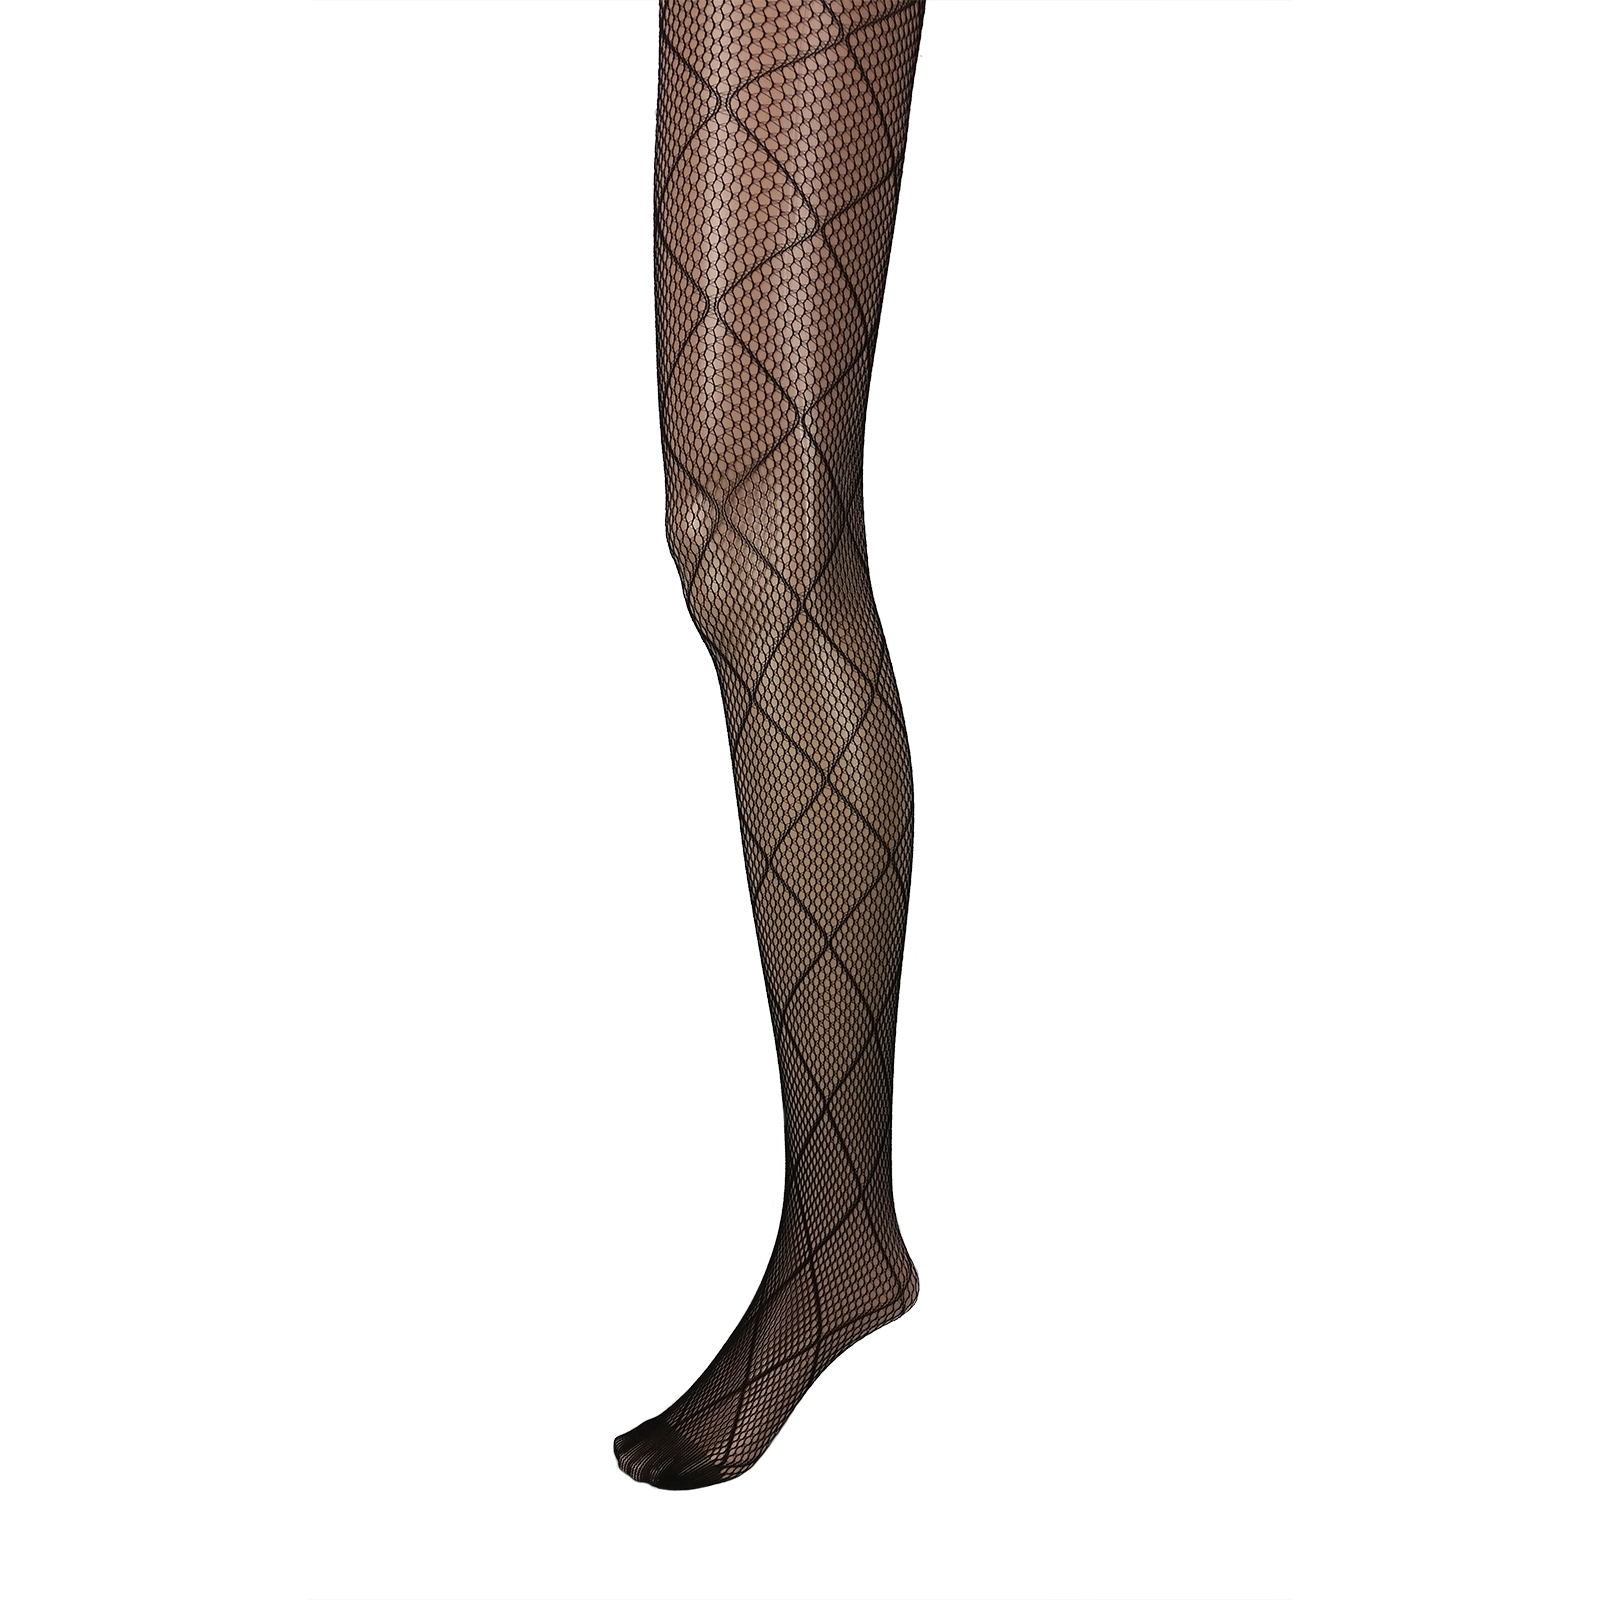 Buy Lace Tights Available in Plus Sizes, Including Luxury Black Lace Tights, Floral Fishnet Lace Styles and More. Offering Best Online Prices.